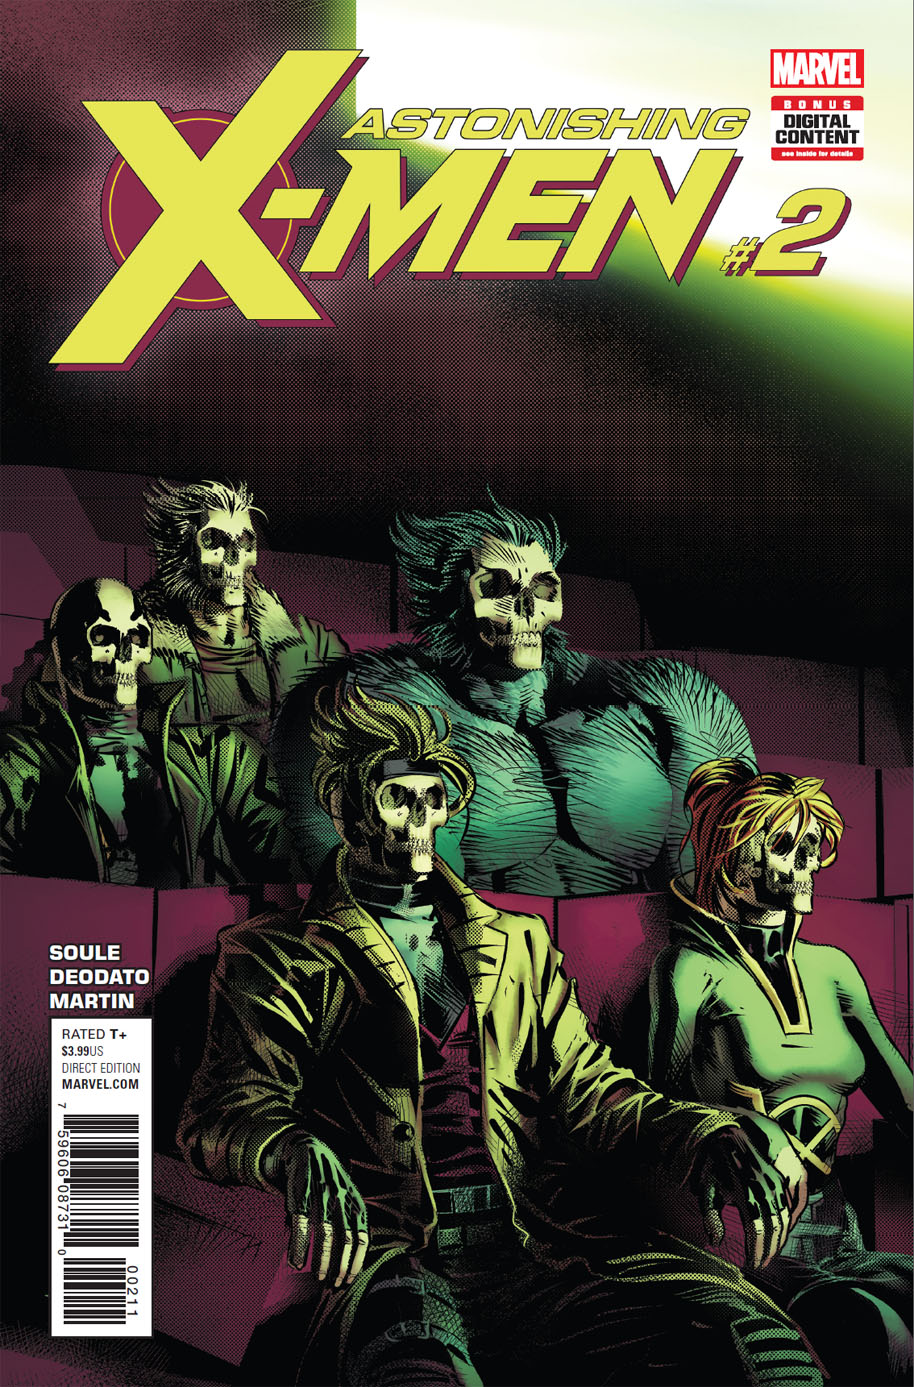 Astonishing X-Men 2 cover